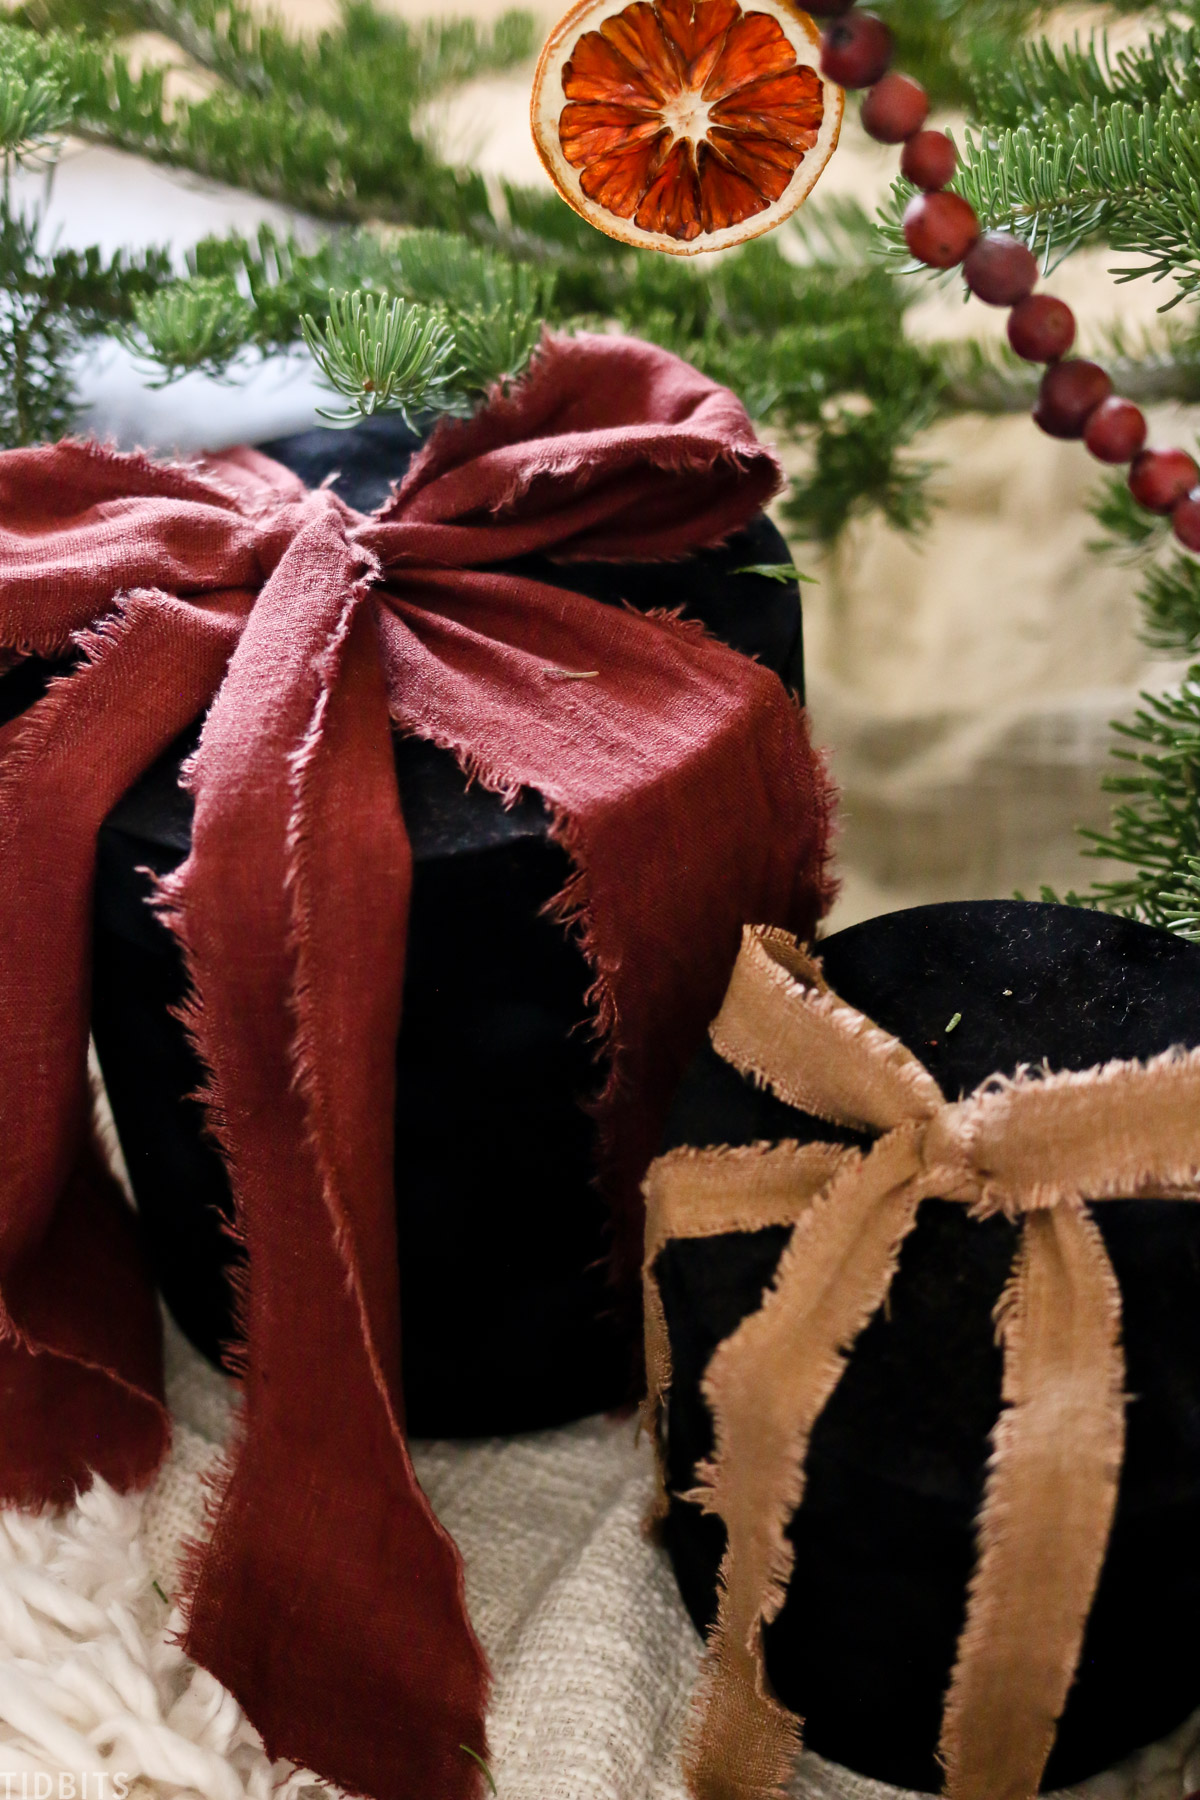 two Christmas presents under a Christmas tree with orange and red linen ribbons